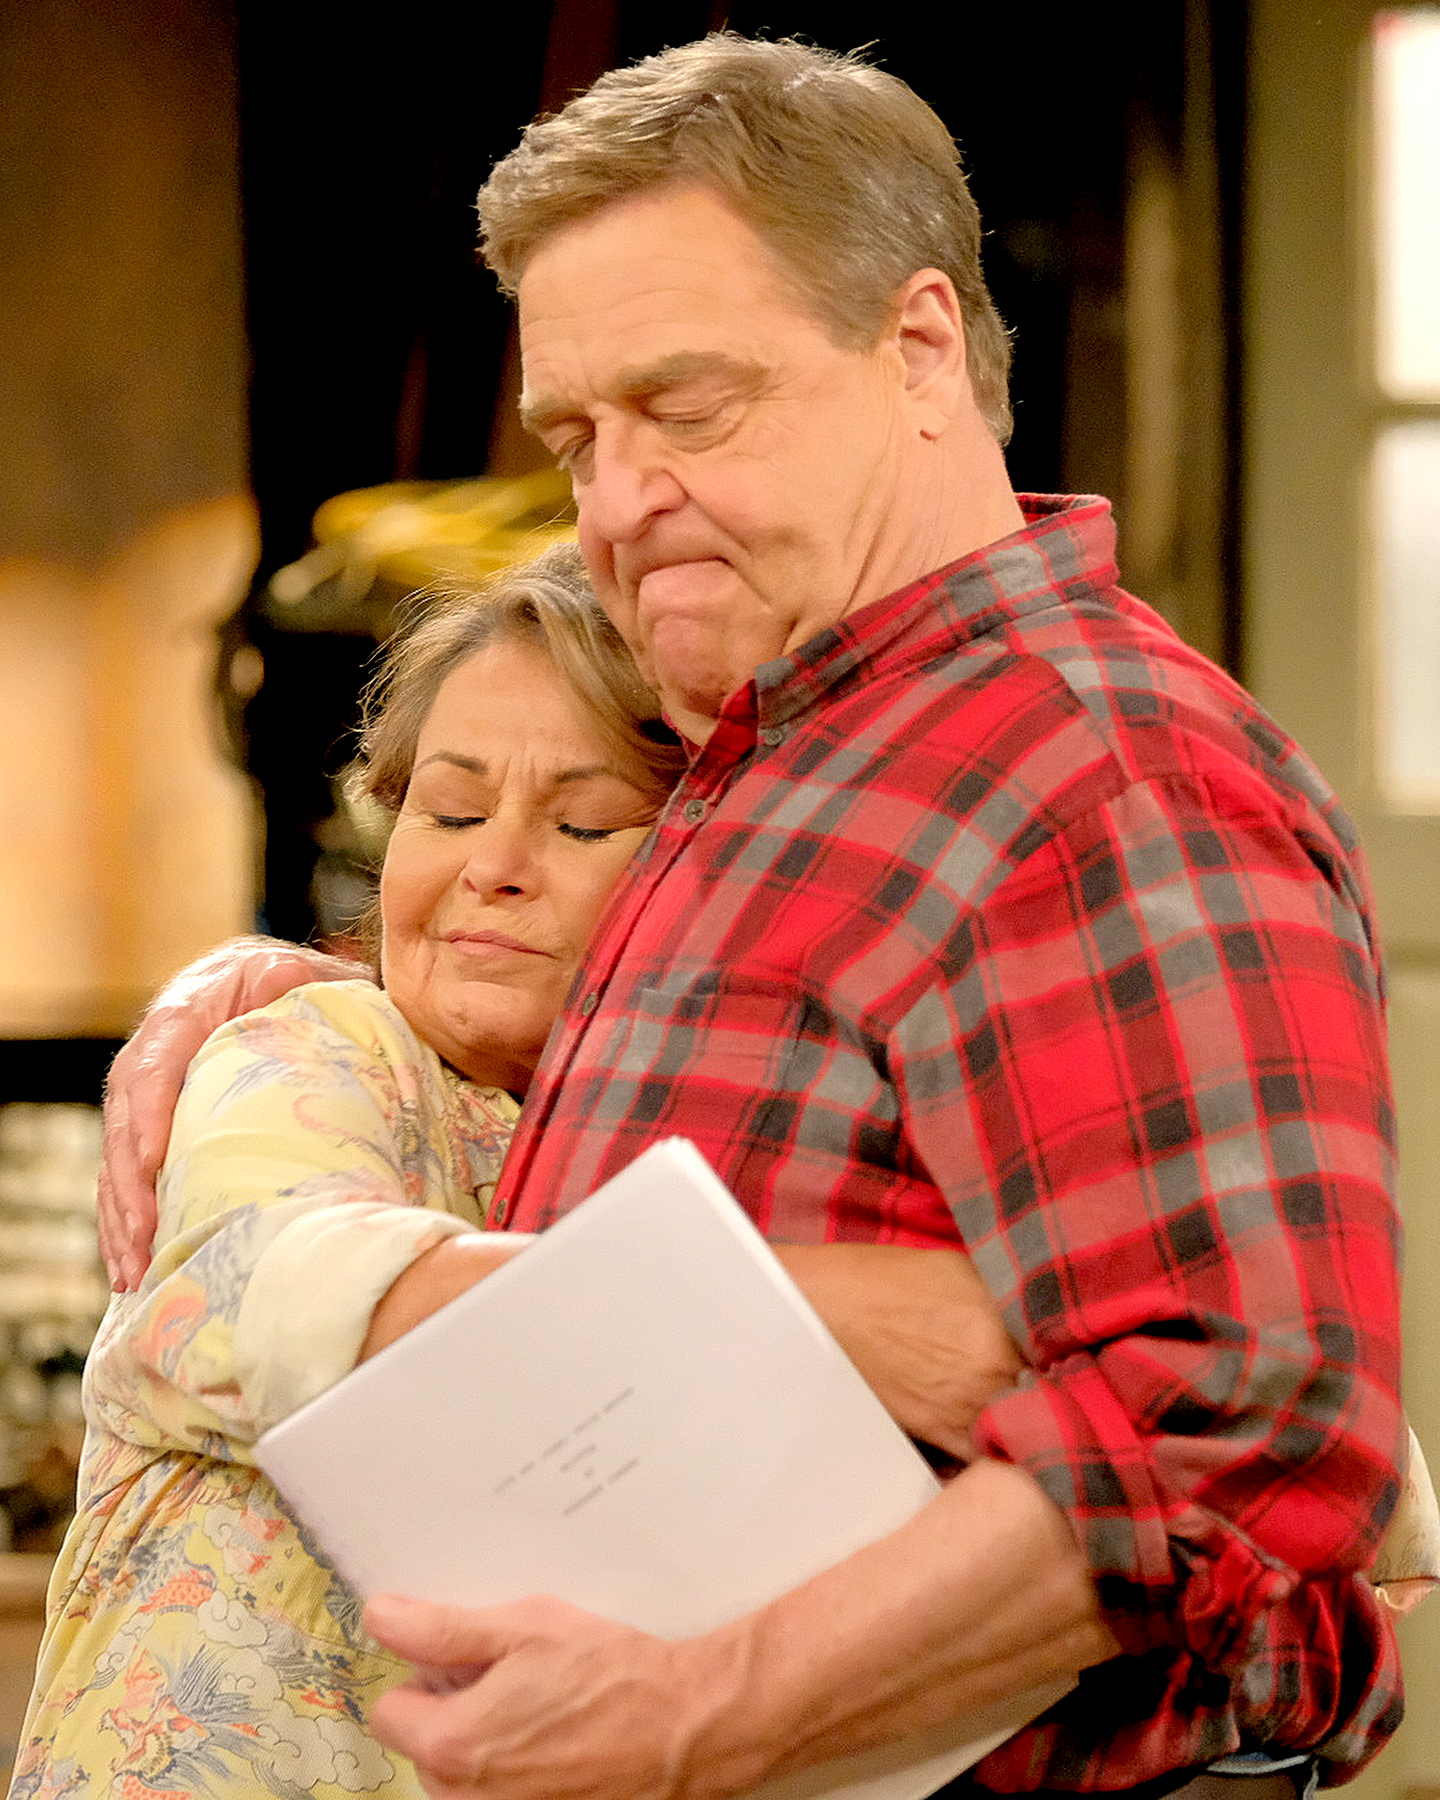 John Goodman: The Hair on My Arms Stood Up Stepping Onto \'Roseanne\' Set